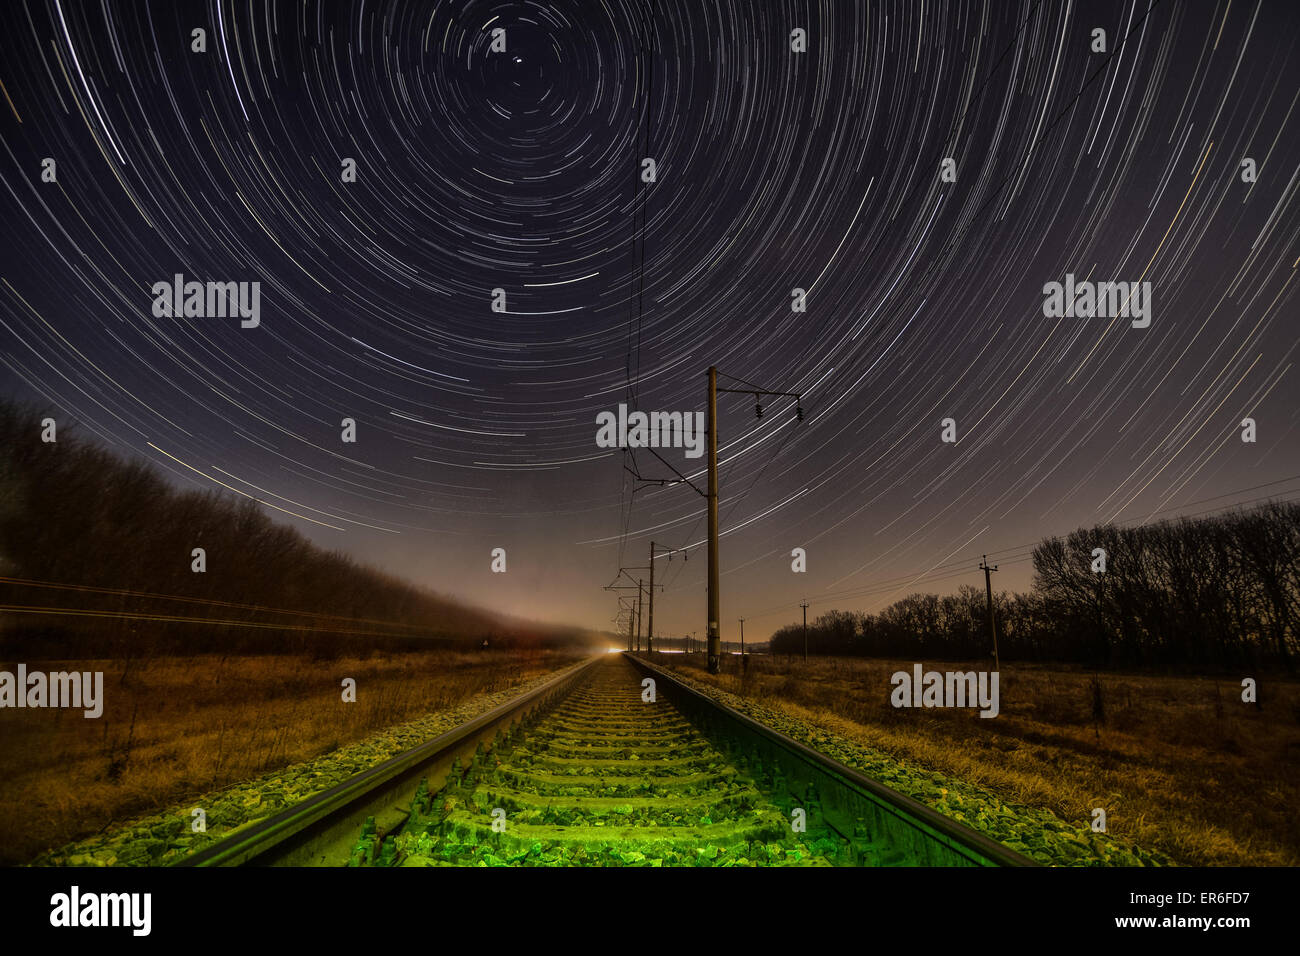 Night rails -green light train way with motion stars, stratrails skyes - Stock Image